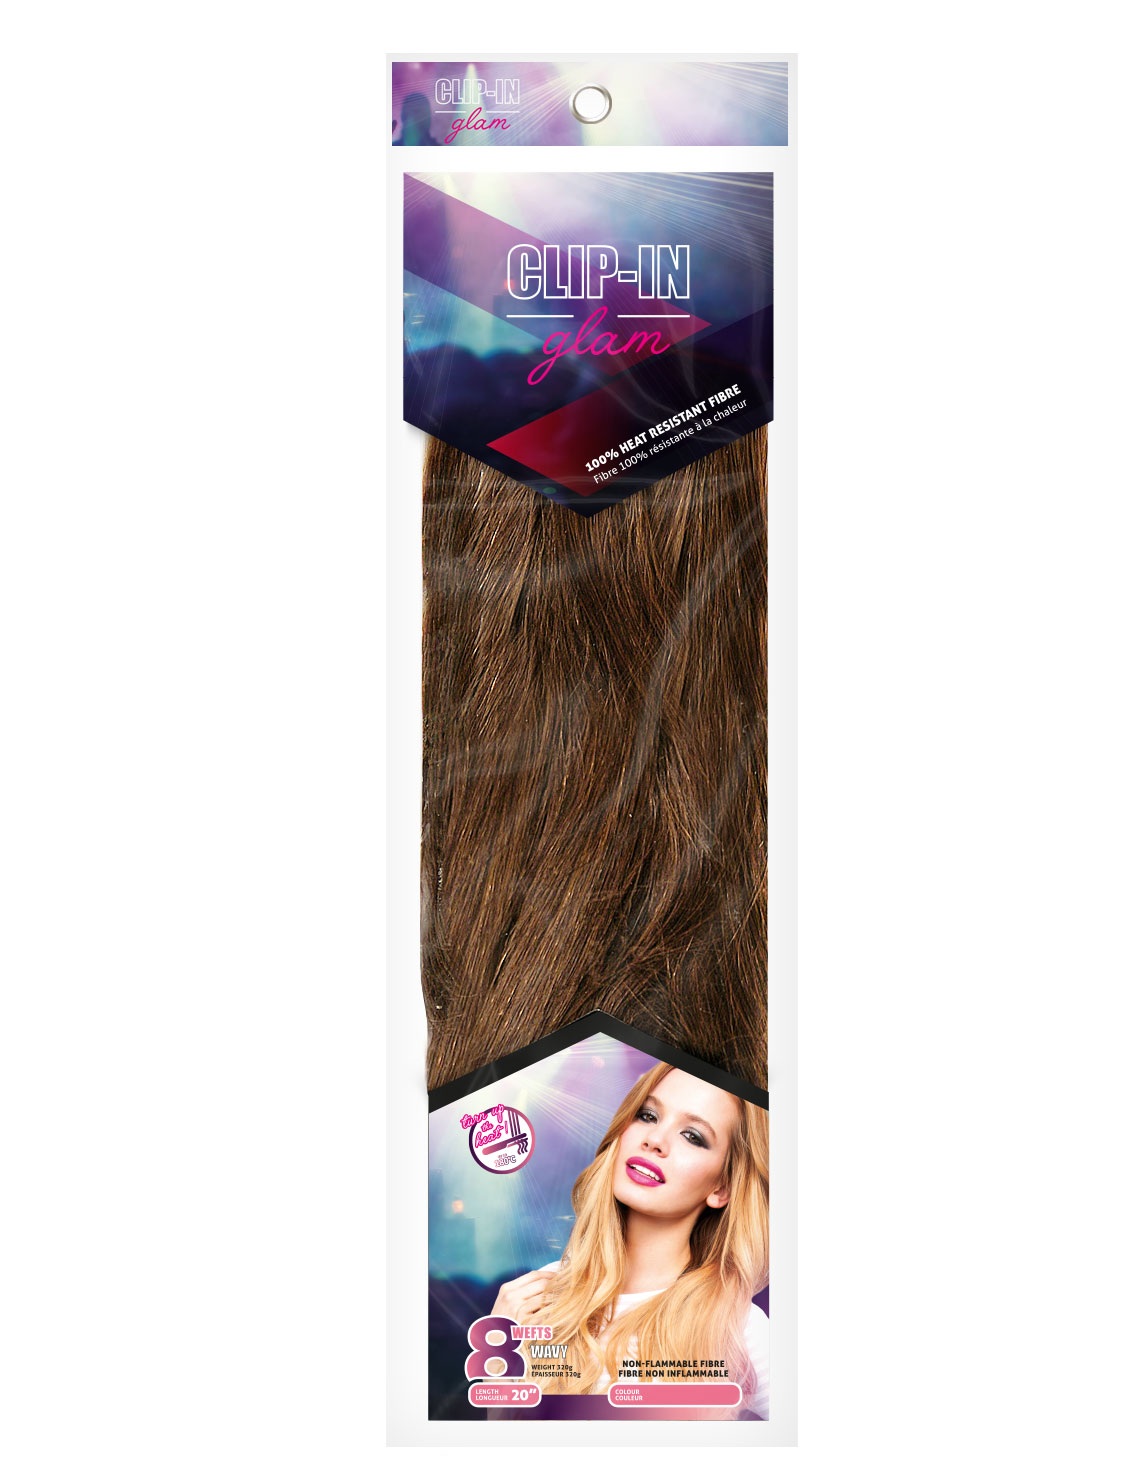 CLIP-IN GLAM 8 Wefts Wavy, £21.49